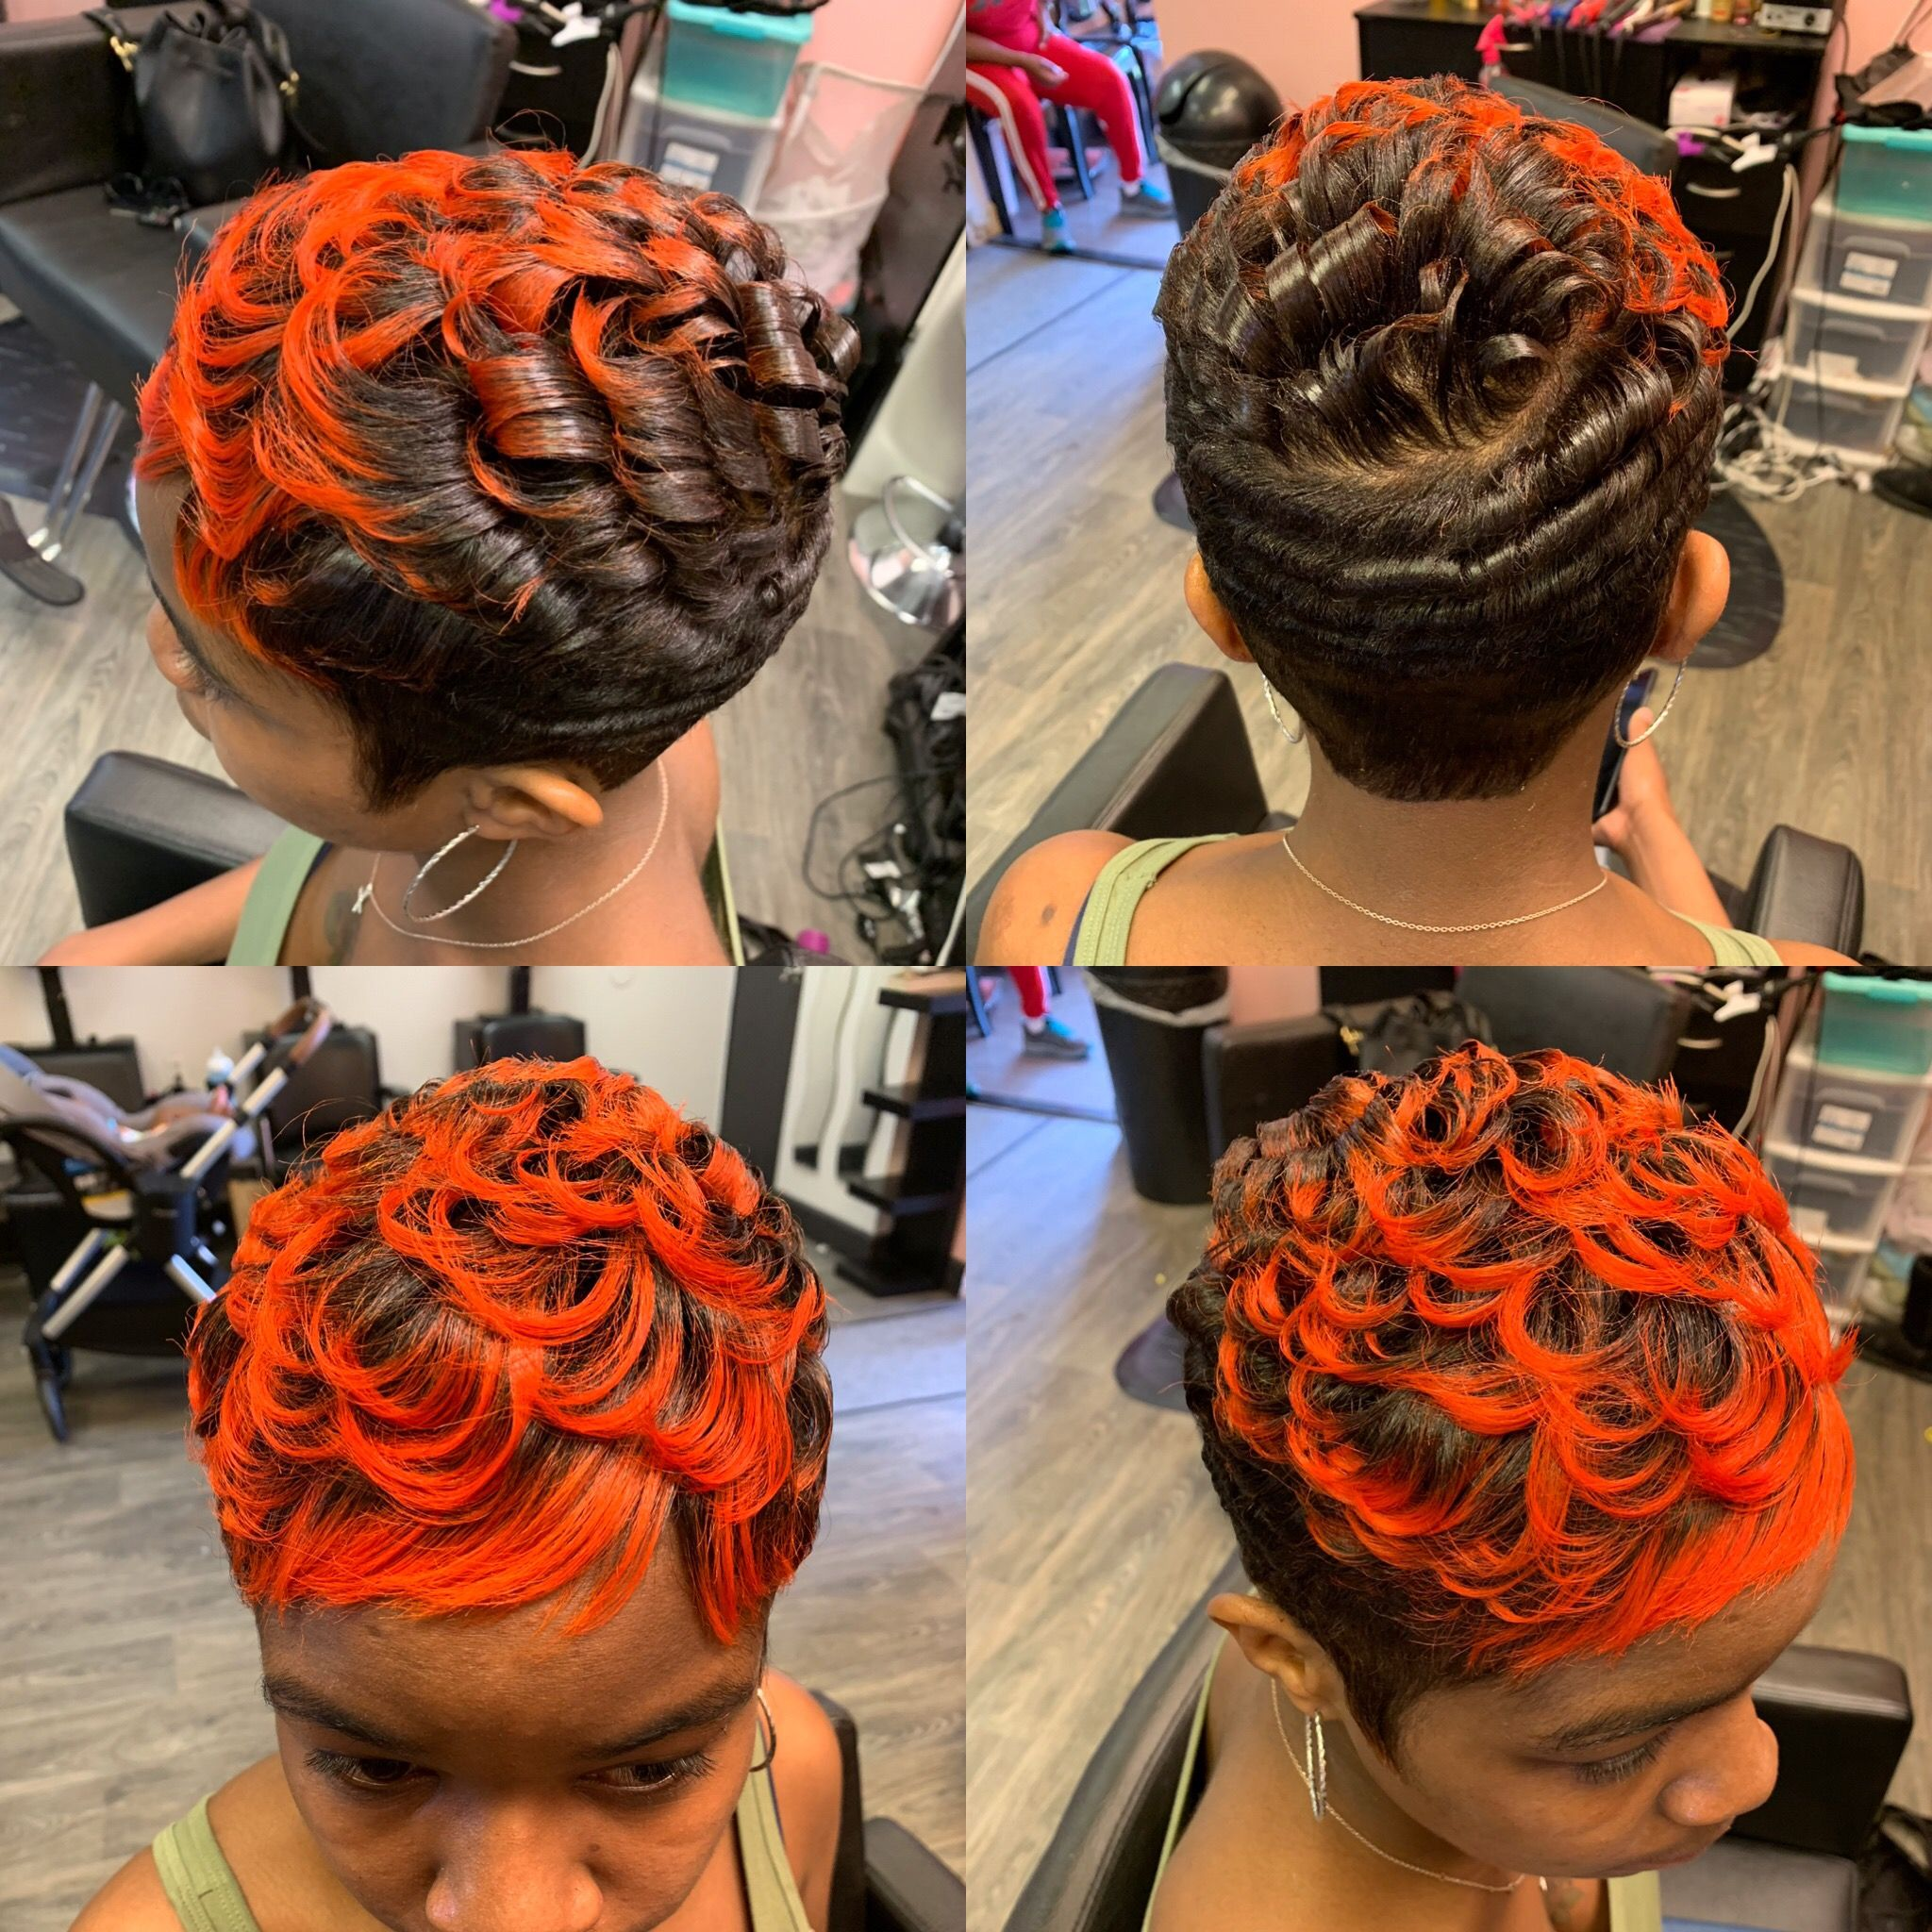 orangehair shorthairstyles Orange hair, Hair styles